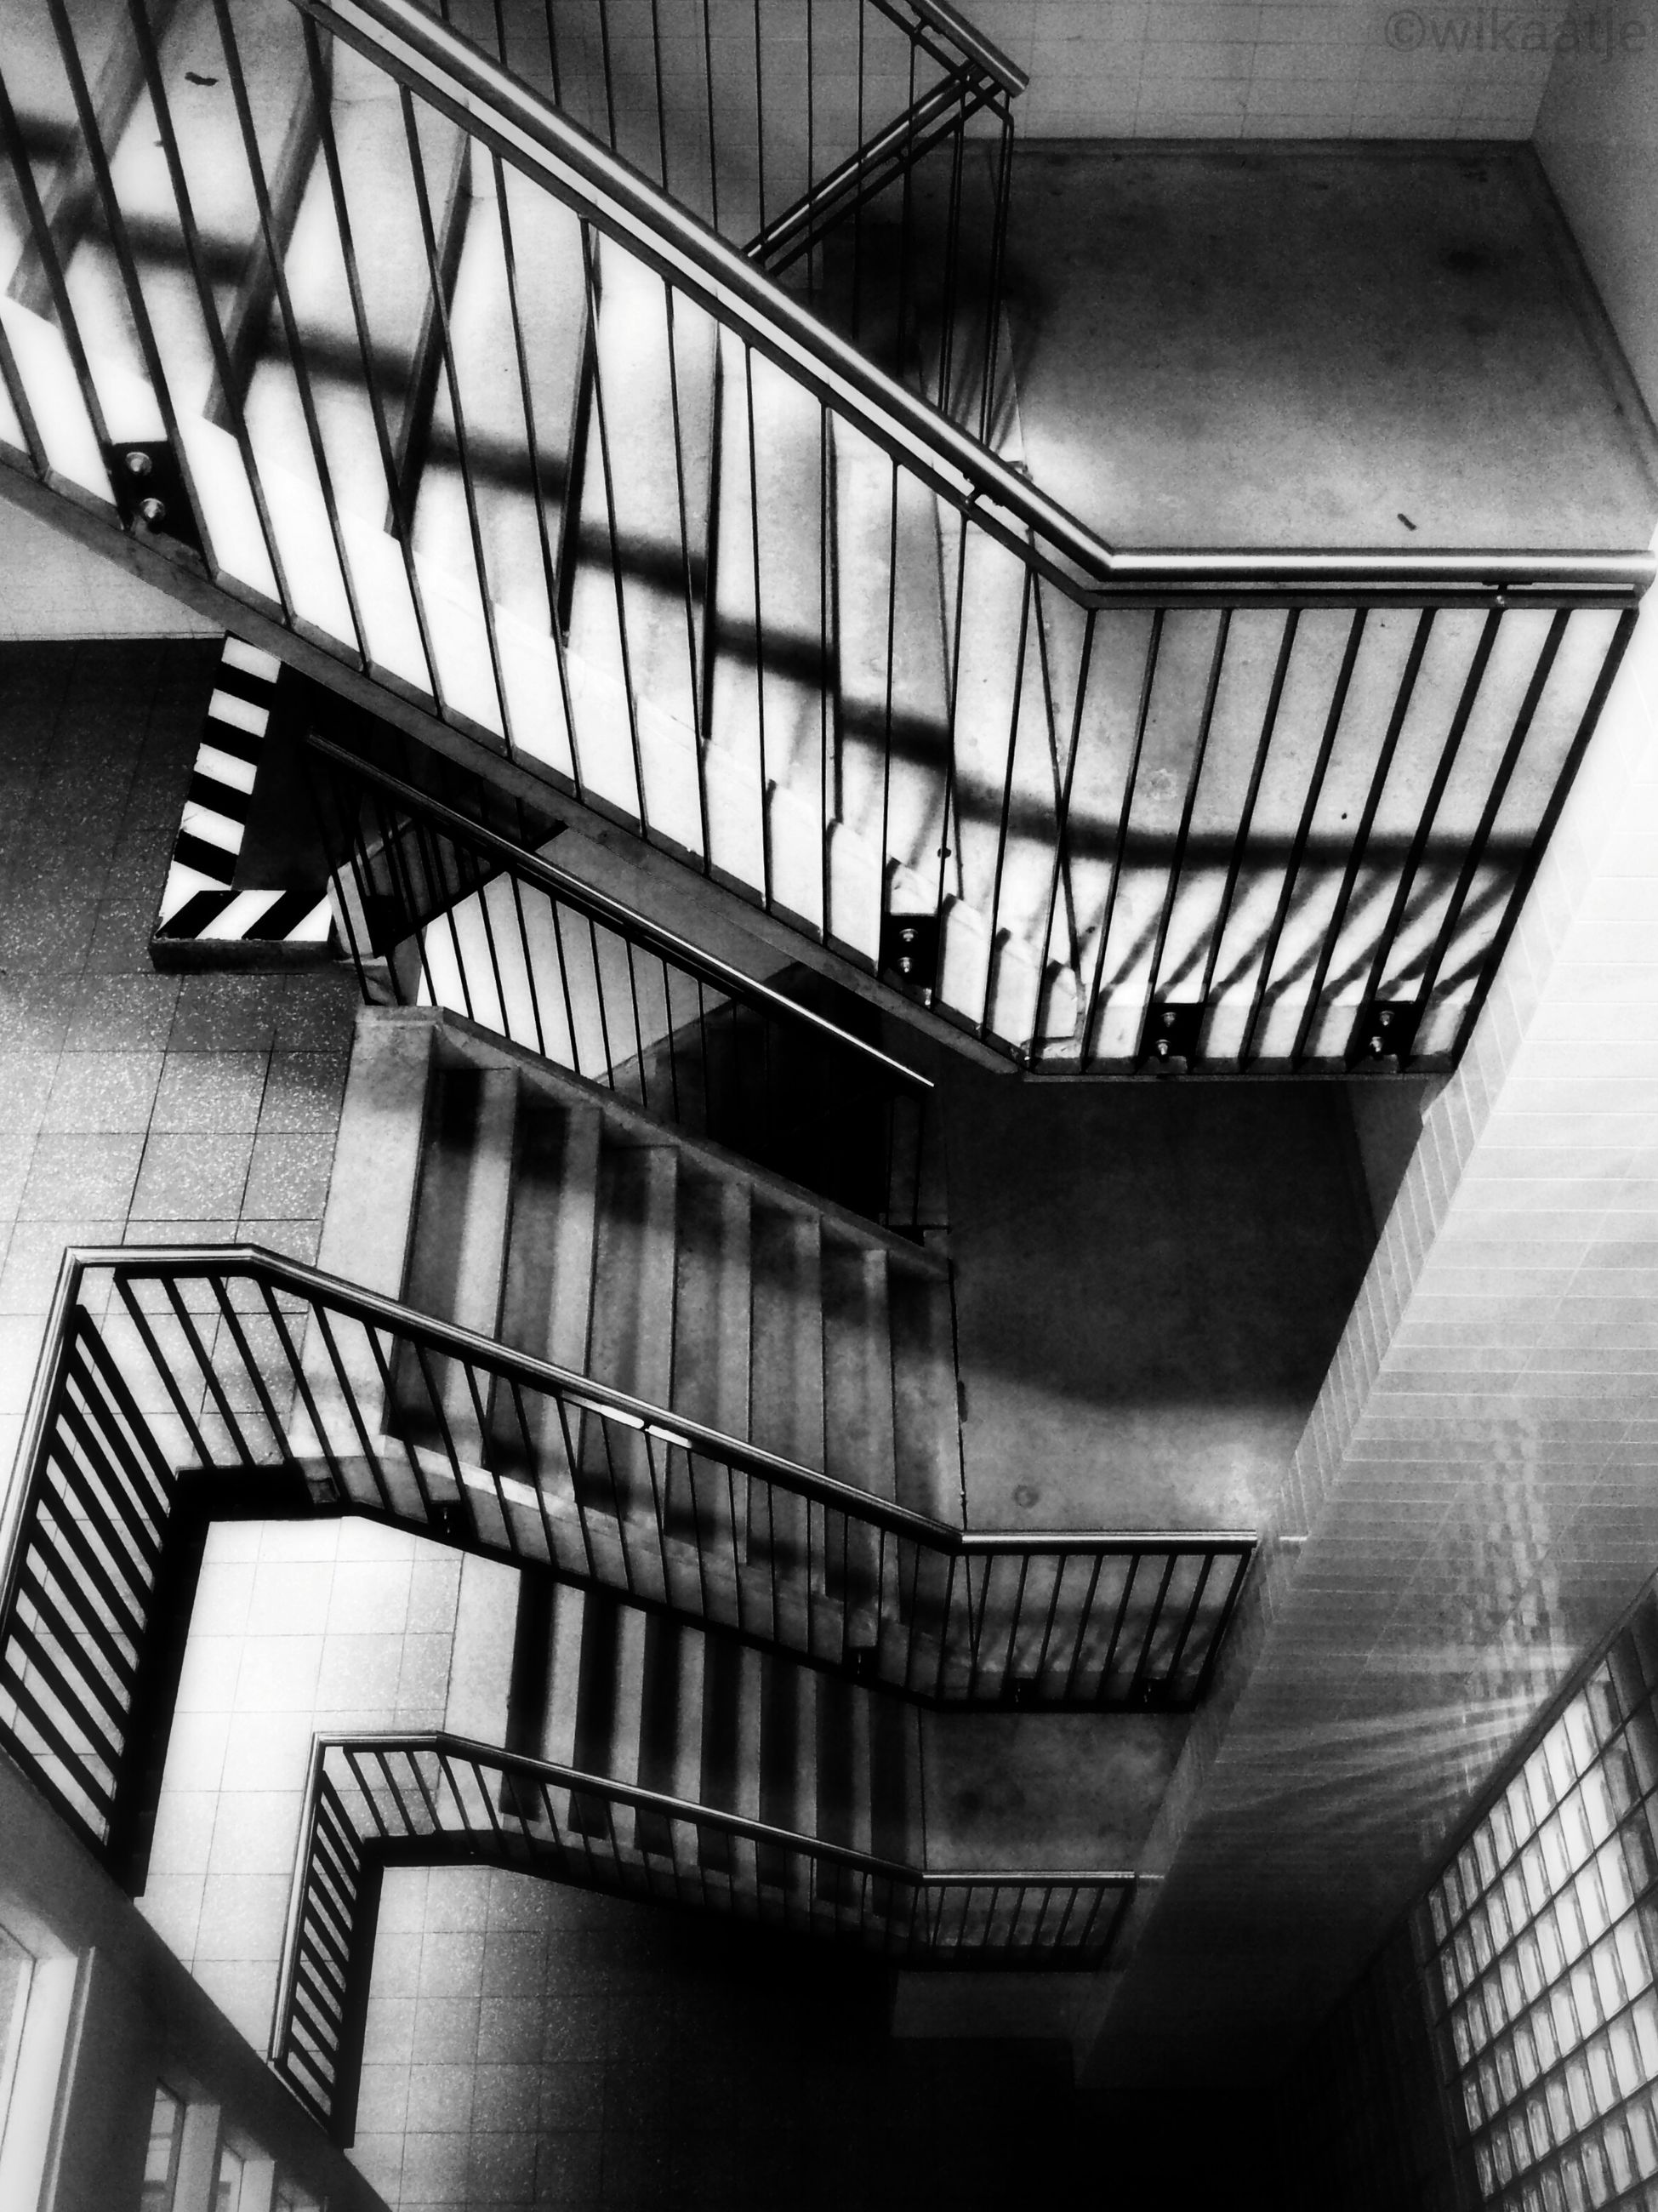 architecture, built structure, indoors, low angle view, ceiling, railing, staircase, building, modern, steps and staircases, steps, building exterior, architectural feature, interior, railroad station, no people, high angle view, day, metal, pattern